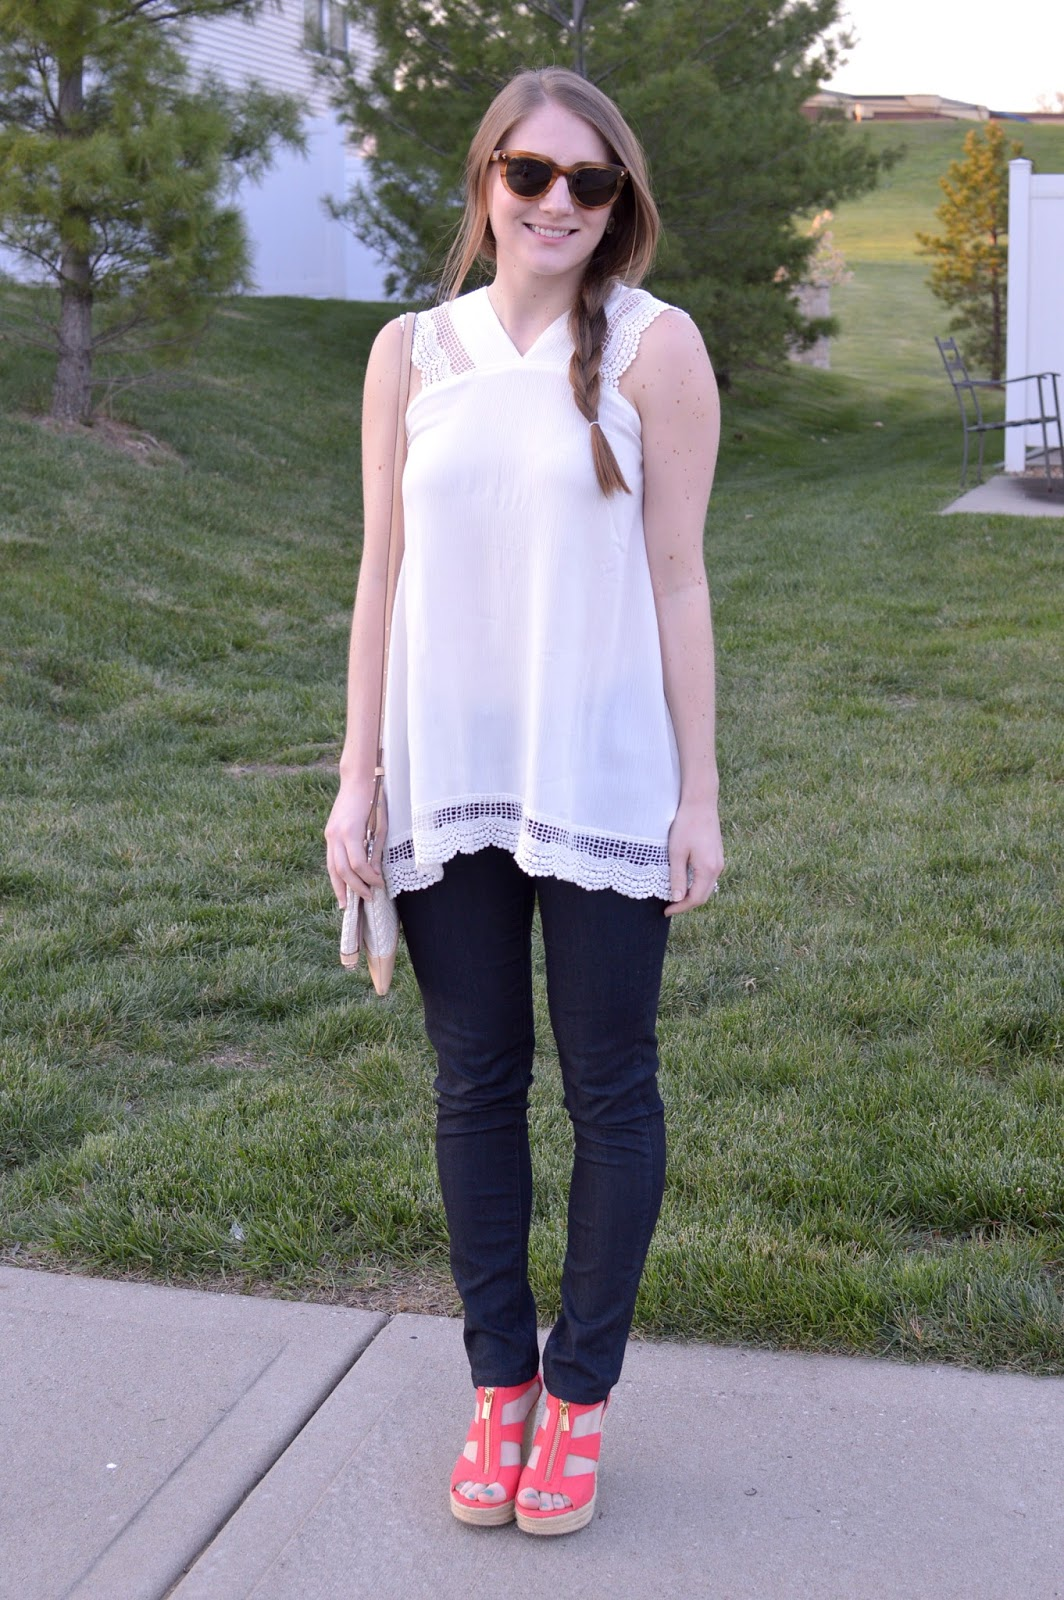 cute outfits for spring with a white top | stella and dot sunglasses | a memory of us | kansas city fashion blog | white tops for spring | what to wear this spring